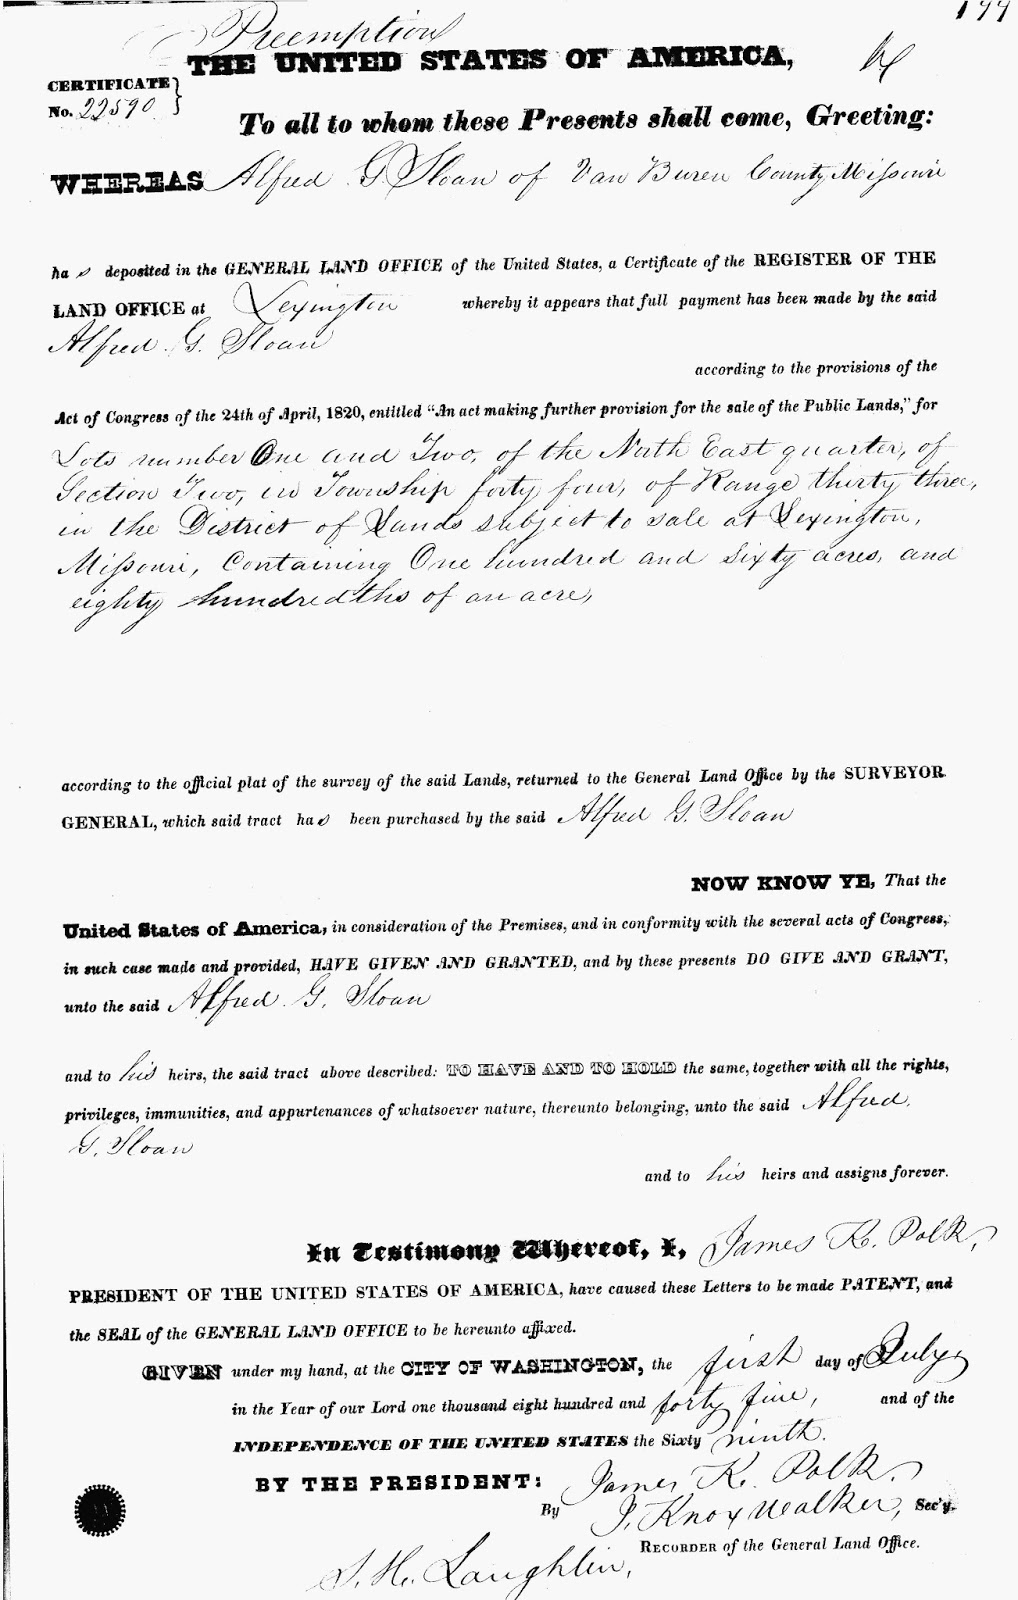 alfred g sloan s first land patent from 1845